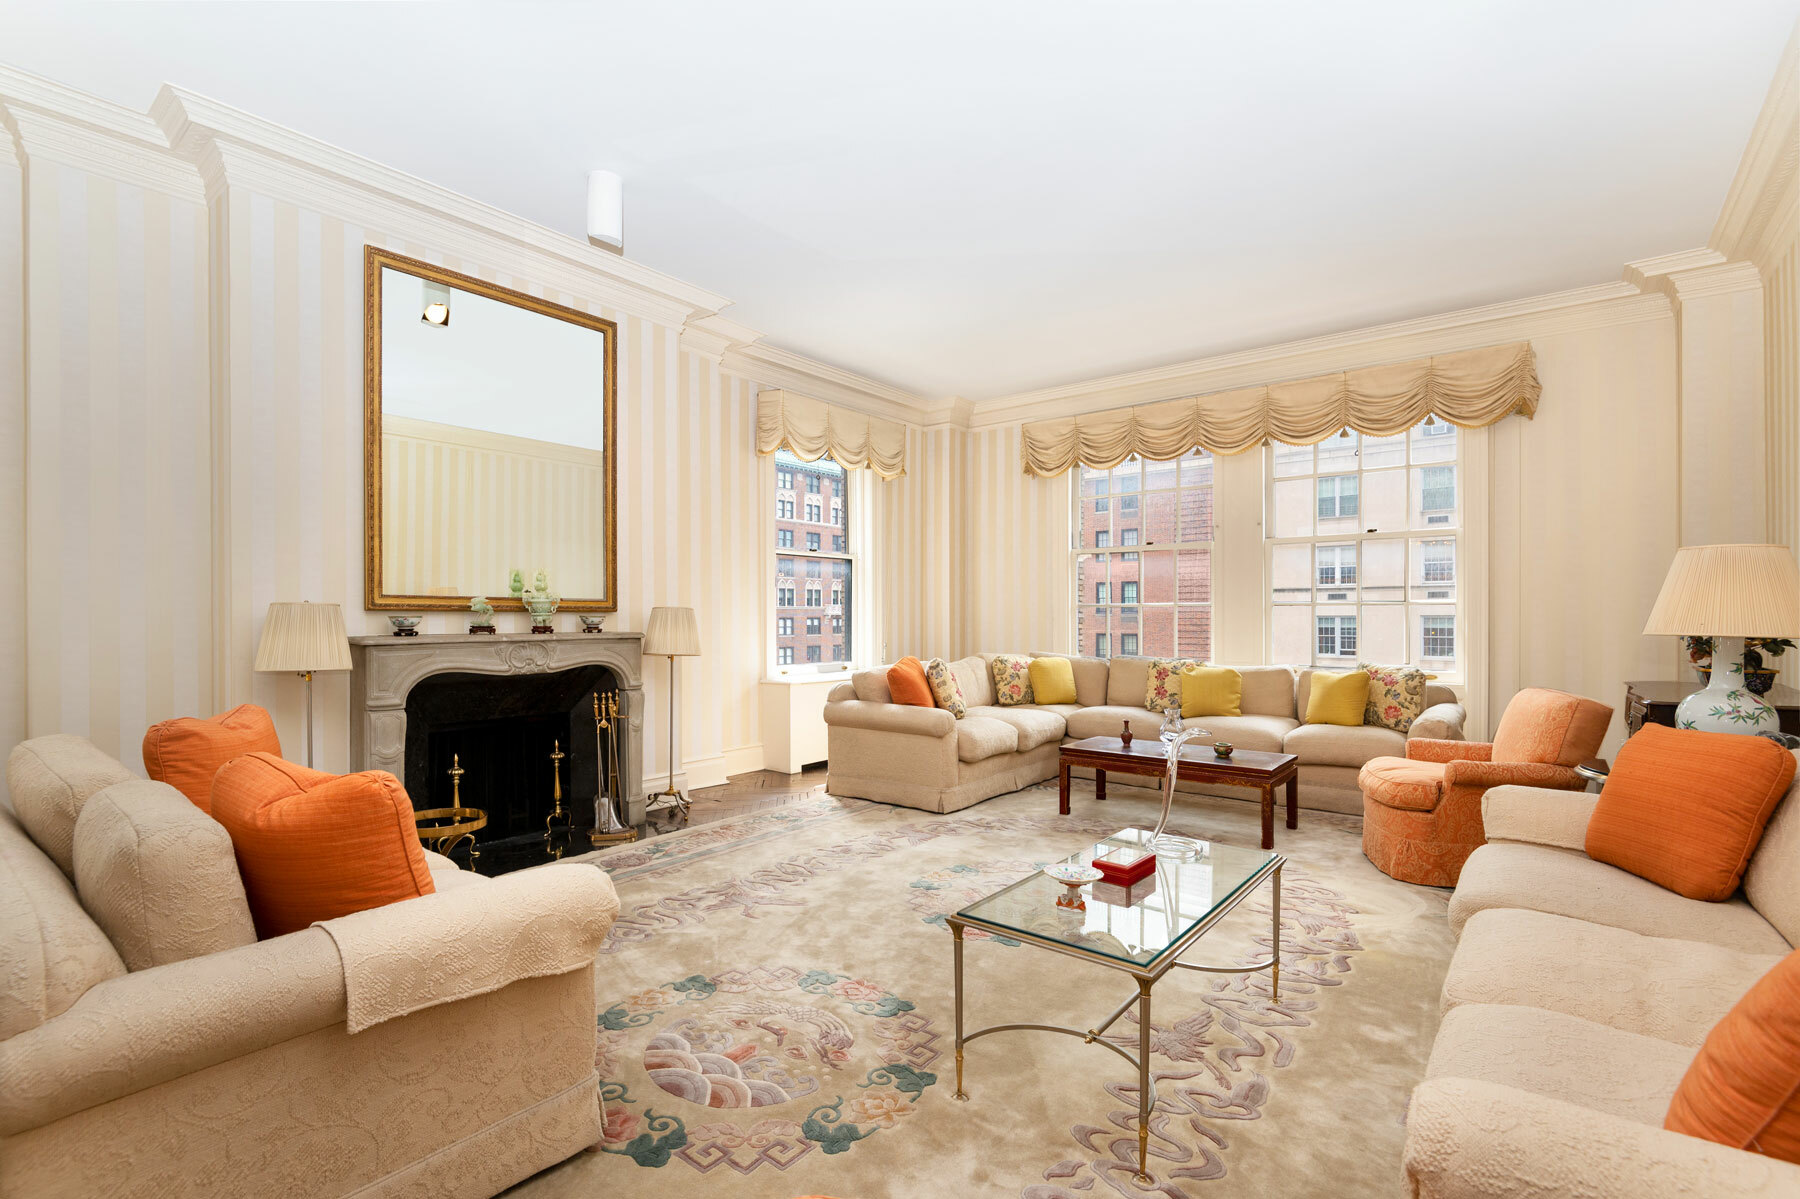 One of J. E. R. Carpenter's celebrated creations, this home exudes a pure sophistication that will transport you to an earlier era of New York City chic. This rarely available, full-floor cooperative at 635 Park Avenue has come to market for the first time in decades.    From the inviting Italian-Renaissance Palazzo façade wrapping the southeast corner of east 66th Street and Park Avenue to the magnificent and inviting circular Foyer, you have the unique opportunity to restore this eighth-floor beauty to its original understated details and elegance.  With a private elevator landing vestibule, this home is accessed through a dazzling and perfectly symmetrical circular foyer leading to an expansive corner living room, connected through double doors to a large dining room.  Each room boasts high ceilings and four elegantly appointed wood-burning fireplaces in the living room, dining room, library/den, and adjacent bedroom. A Primary bedroom with large sitting area and dressing room, two bedrooms with en-suite baths and large walk-in closets, one bedroom currently used as a gym with adjacent bathroom in addition to a maid's room, complete this spacious home.   Chef's dream kitchen with large east-facing breakfast room, laundry room and pantry with easy access to service entrance.    If you love architecture, this is the opportunity you have been waiting for.